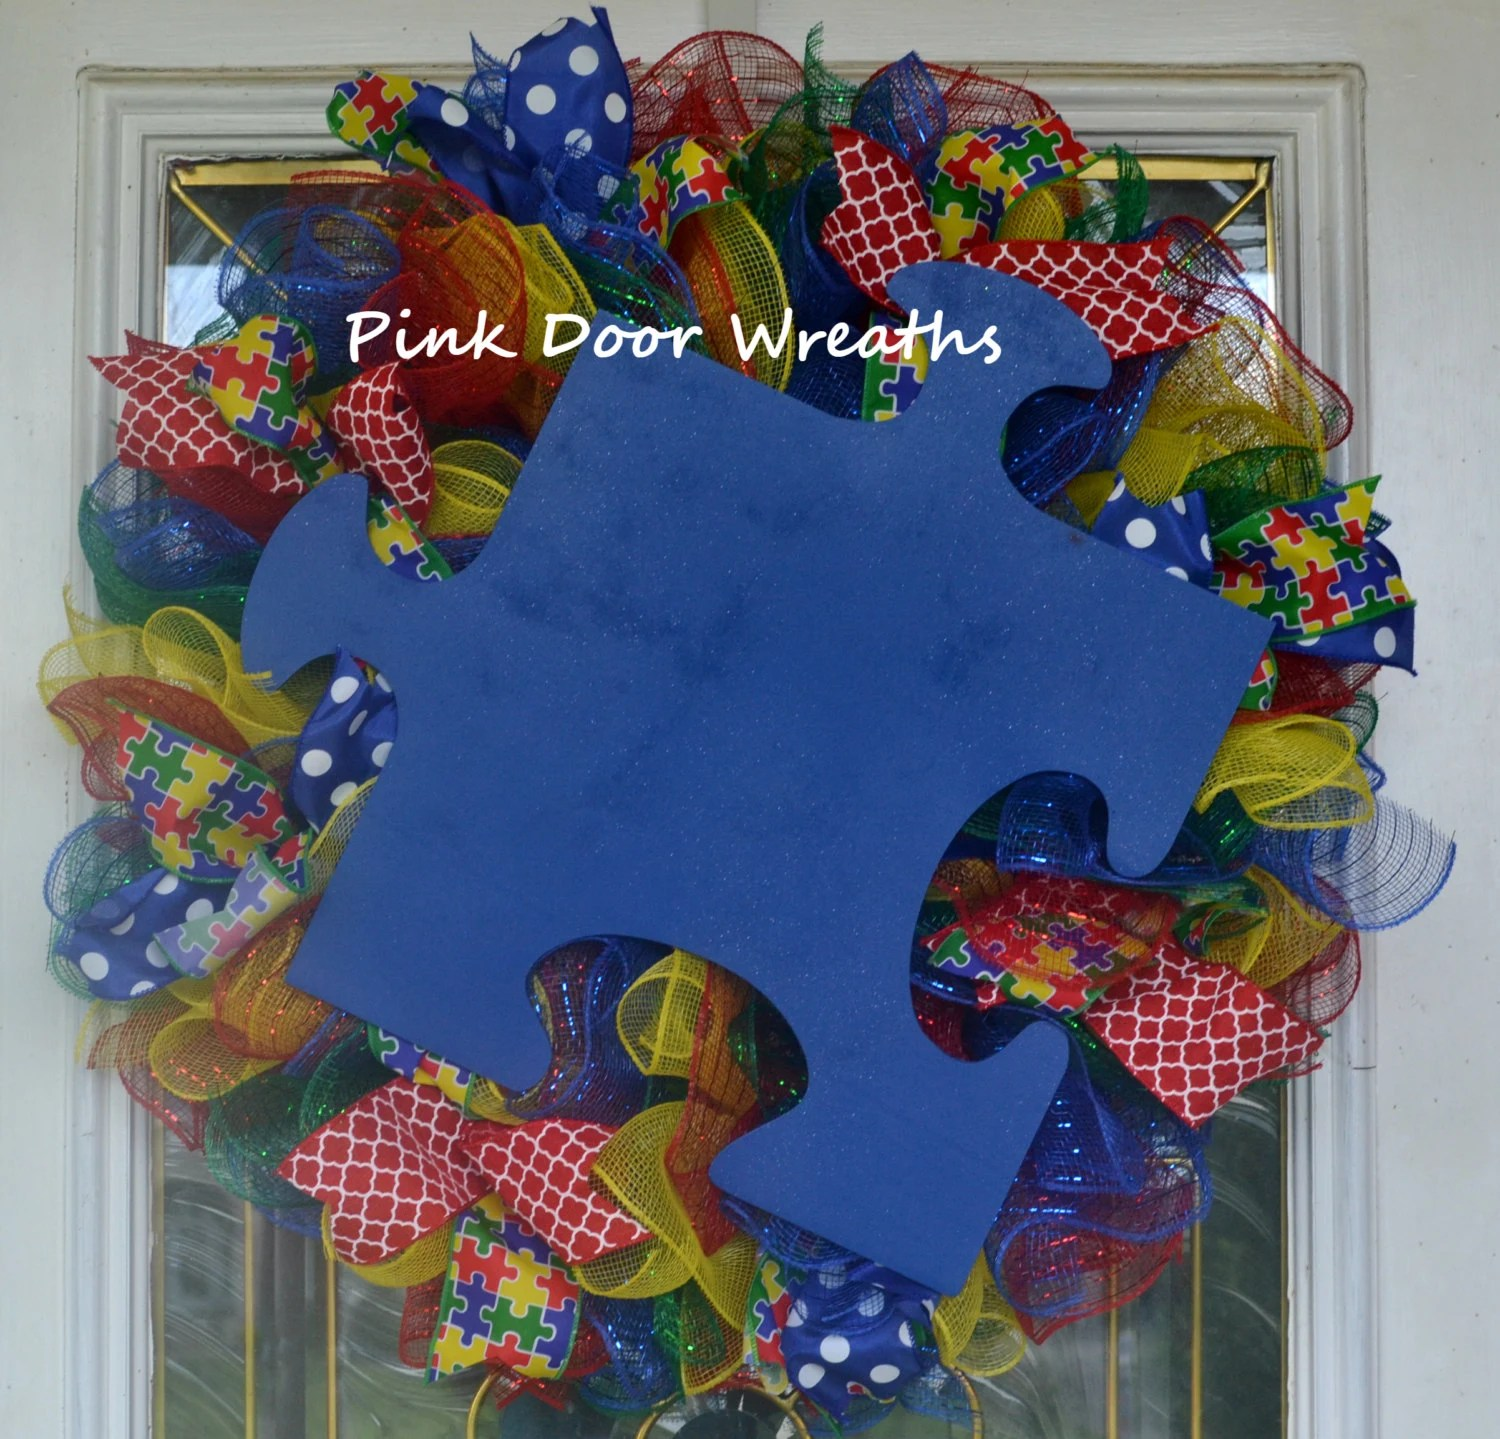 Mesh Wreaths Burlap Wreaths Derby Hats Door By PinkDoorWreaths